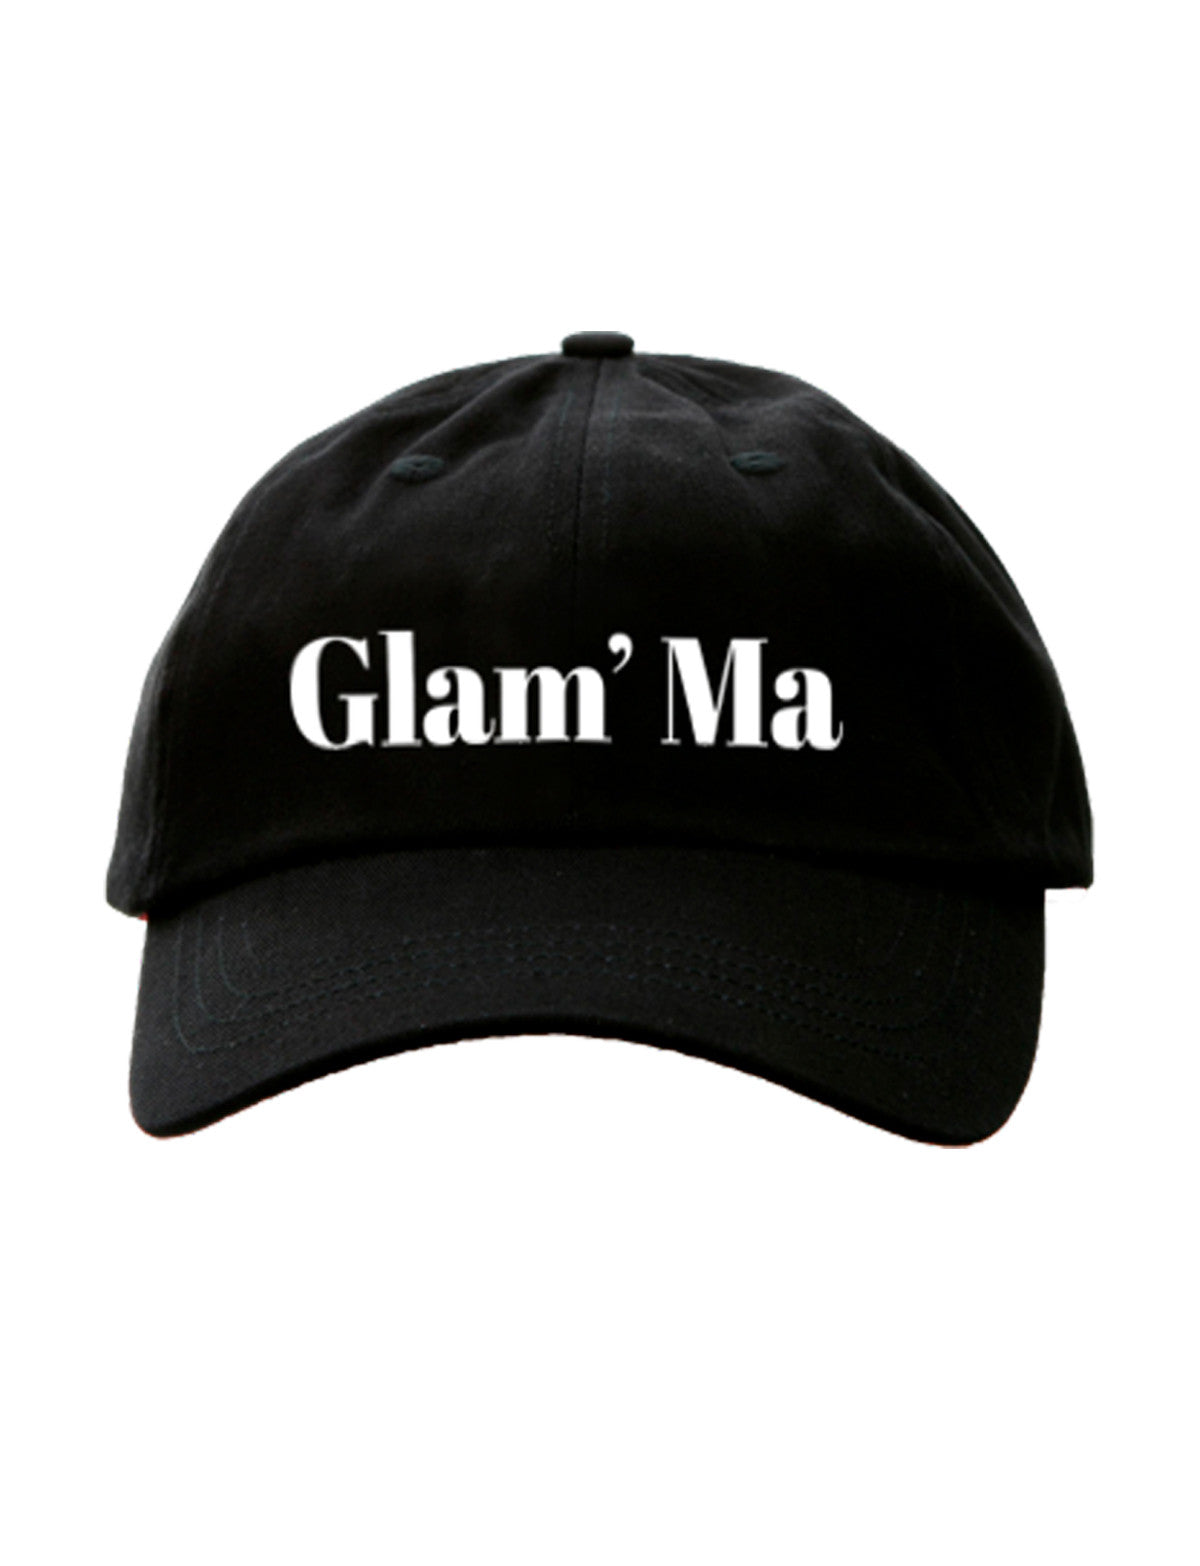 GLAM MA - cotton twill hat